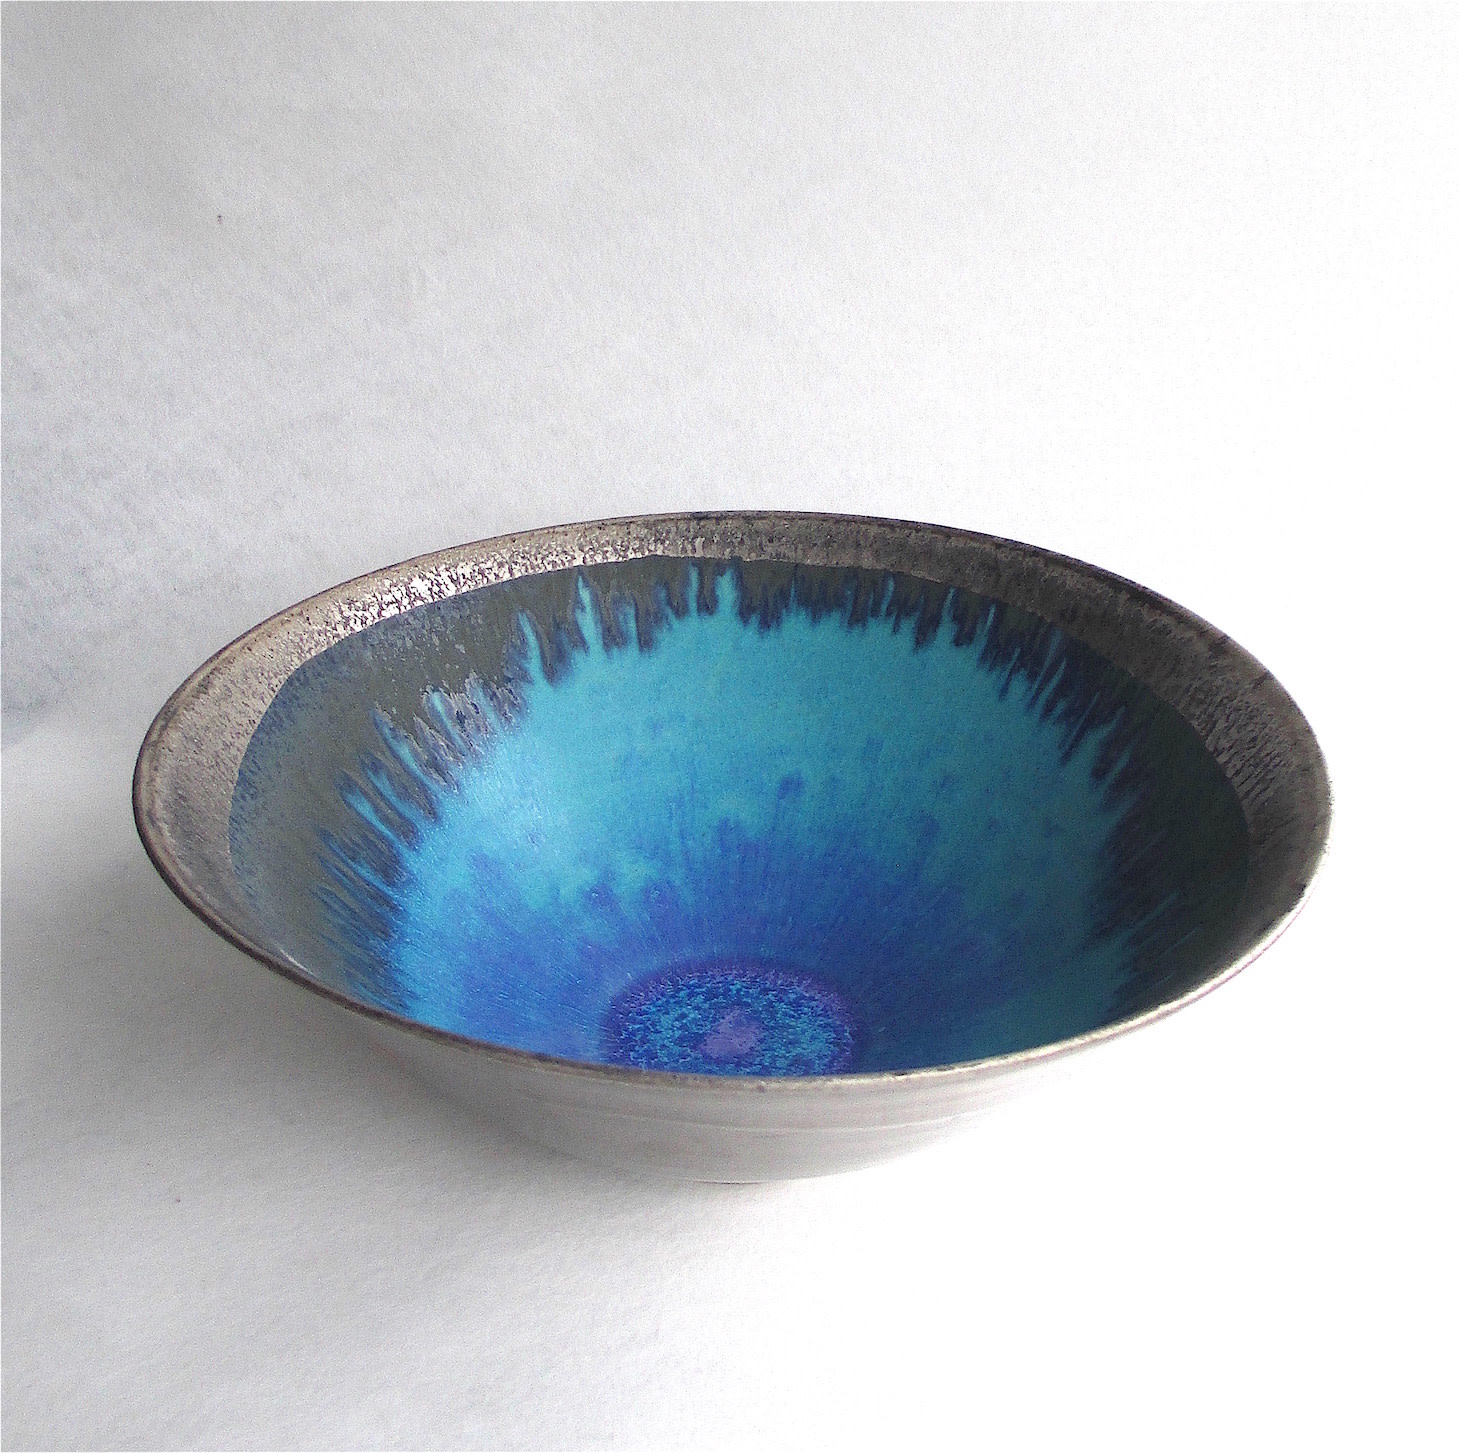 "<span class=""link fancybox-details-link""><a href=""/artists/44-sarah-perry/works/6475-sarah-perry-silver-lustred-blue-pool-bowl-2019/"">View Detail Page</a></span><div class=""artist""><strong>Sarah Perry</strong></div> <div class=""title""><em>Silver Lustred Blue Pool Bowl </em>, 2019</div> <div class=""medium"">stoneware</div> <div class=""dimensions"">h. 11 cm</div><div class=""copyright_line"">Ownart: £42 x 10 Months, 0% APR</div>"